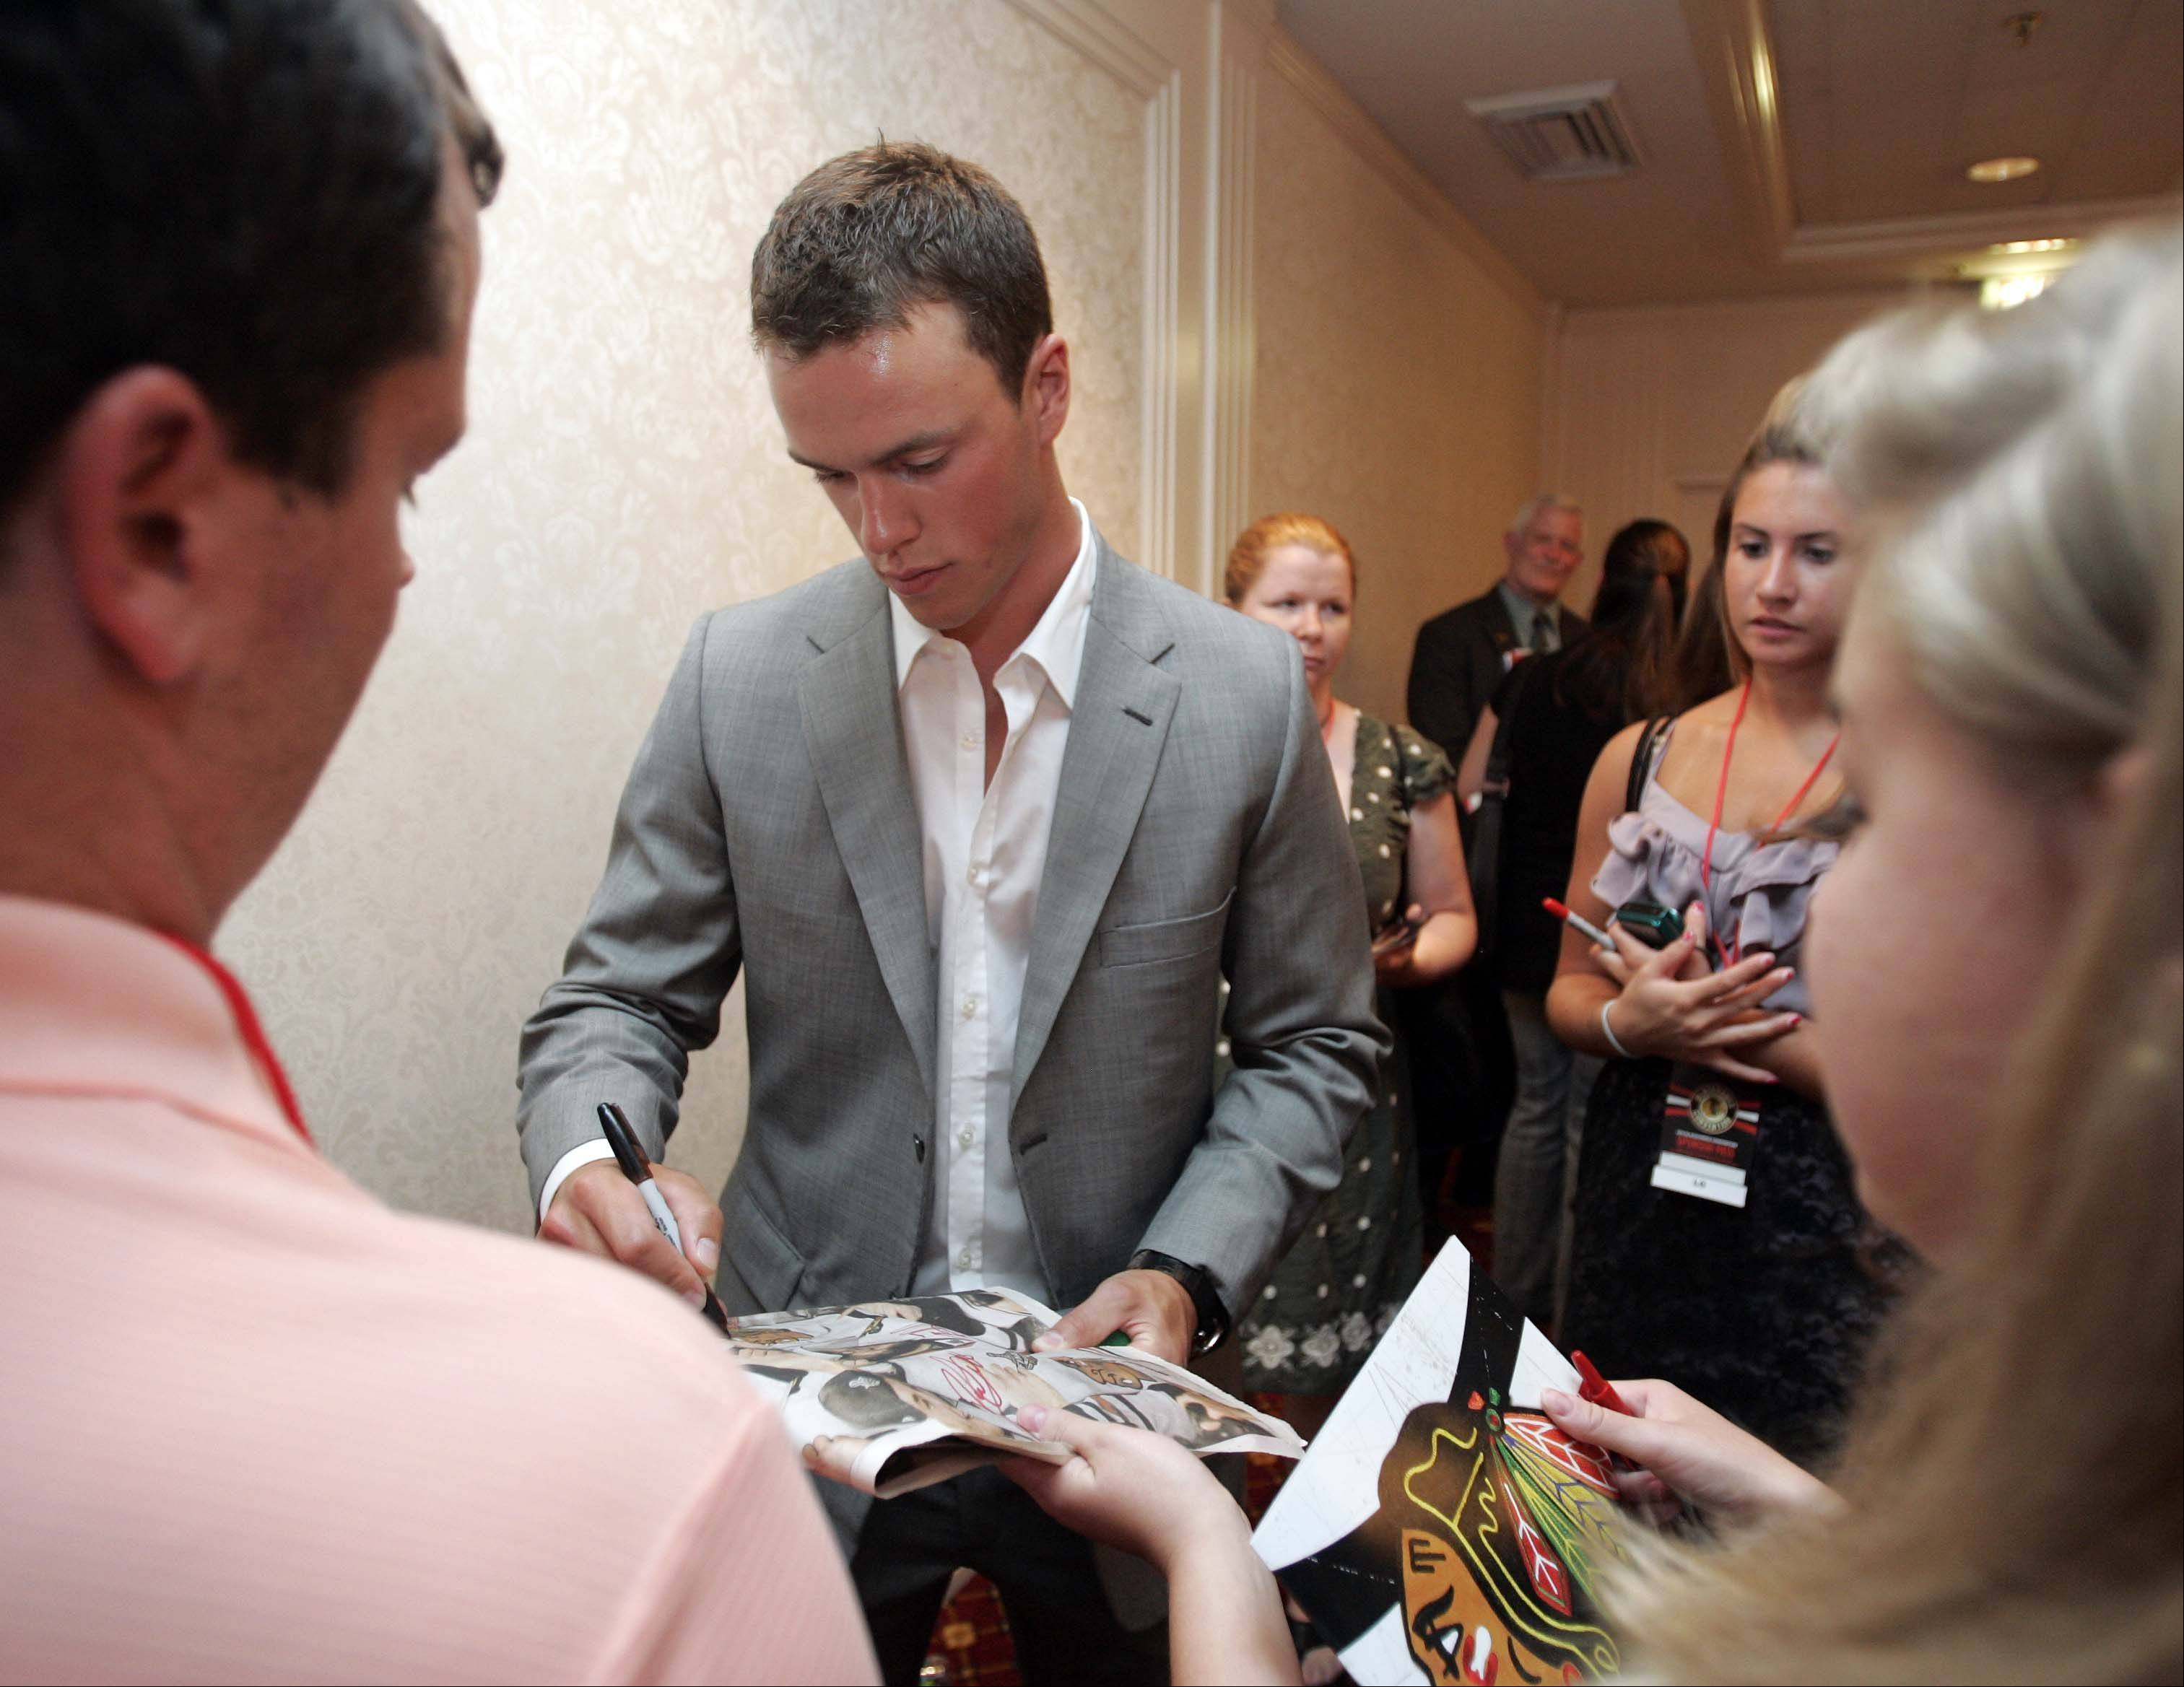 Jonathan Toews signs autographs for fans during the Blackhawks' fan convention.